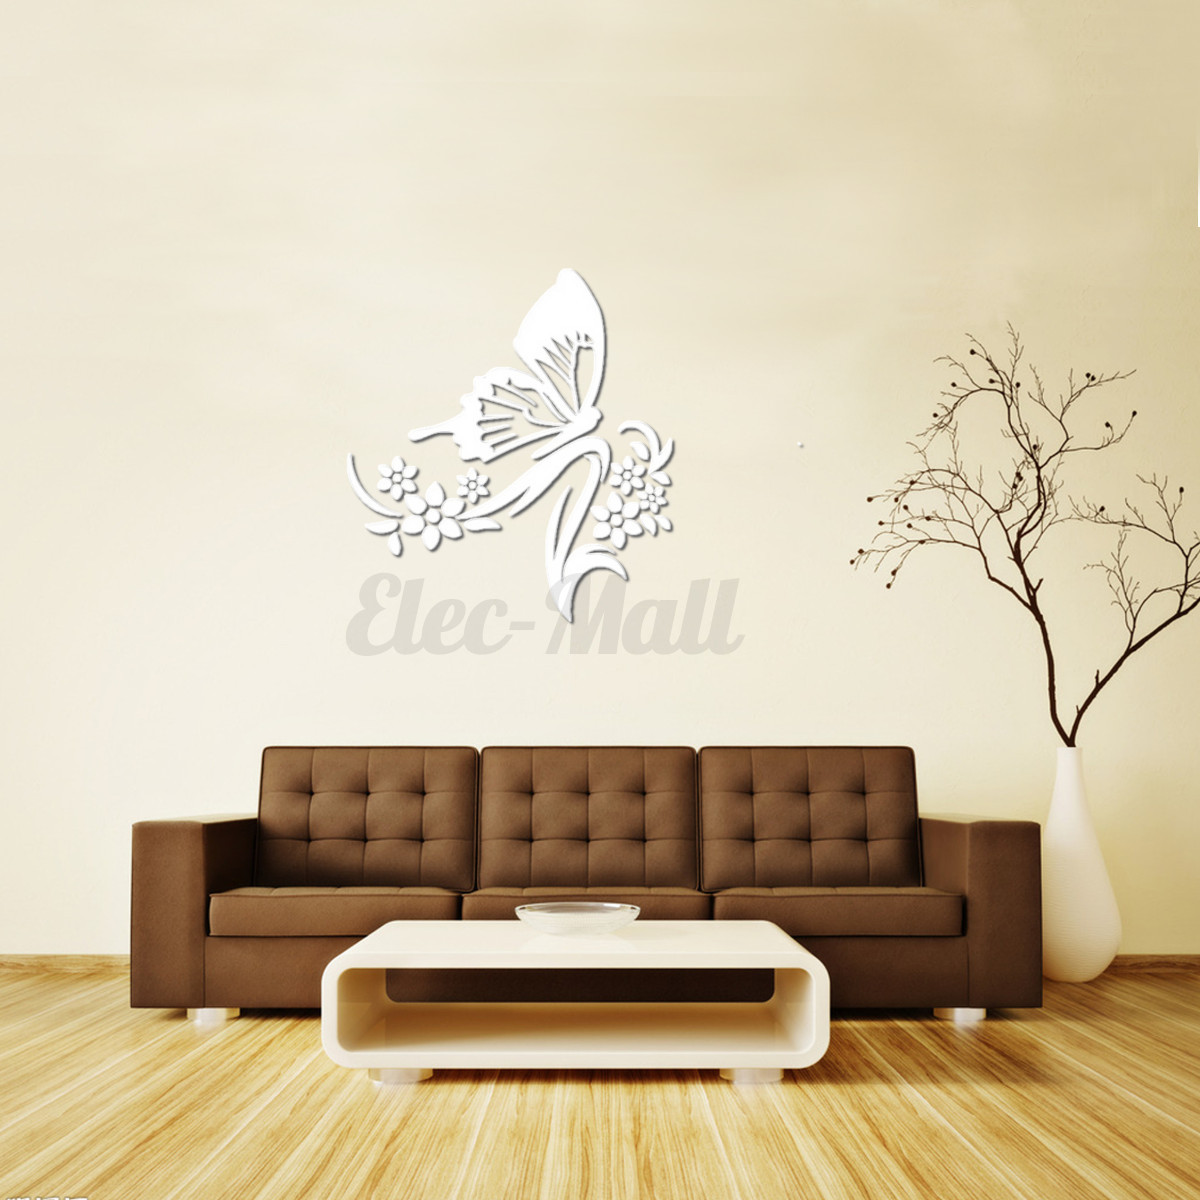 Removable diy 3d mirror surface wall stickers mural art for Diy photo wall mural